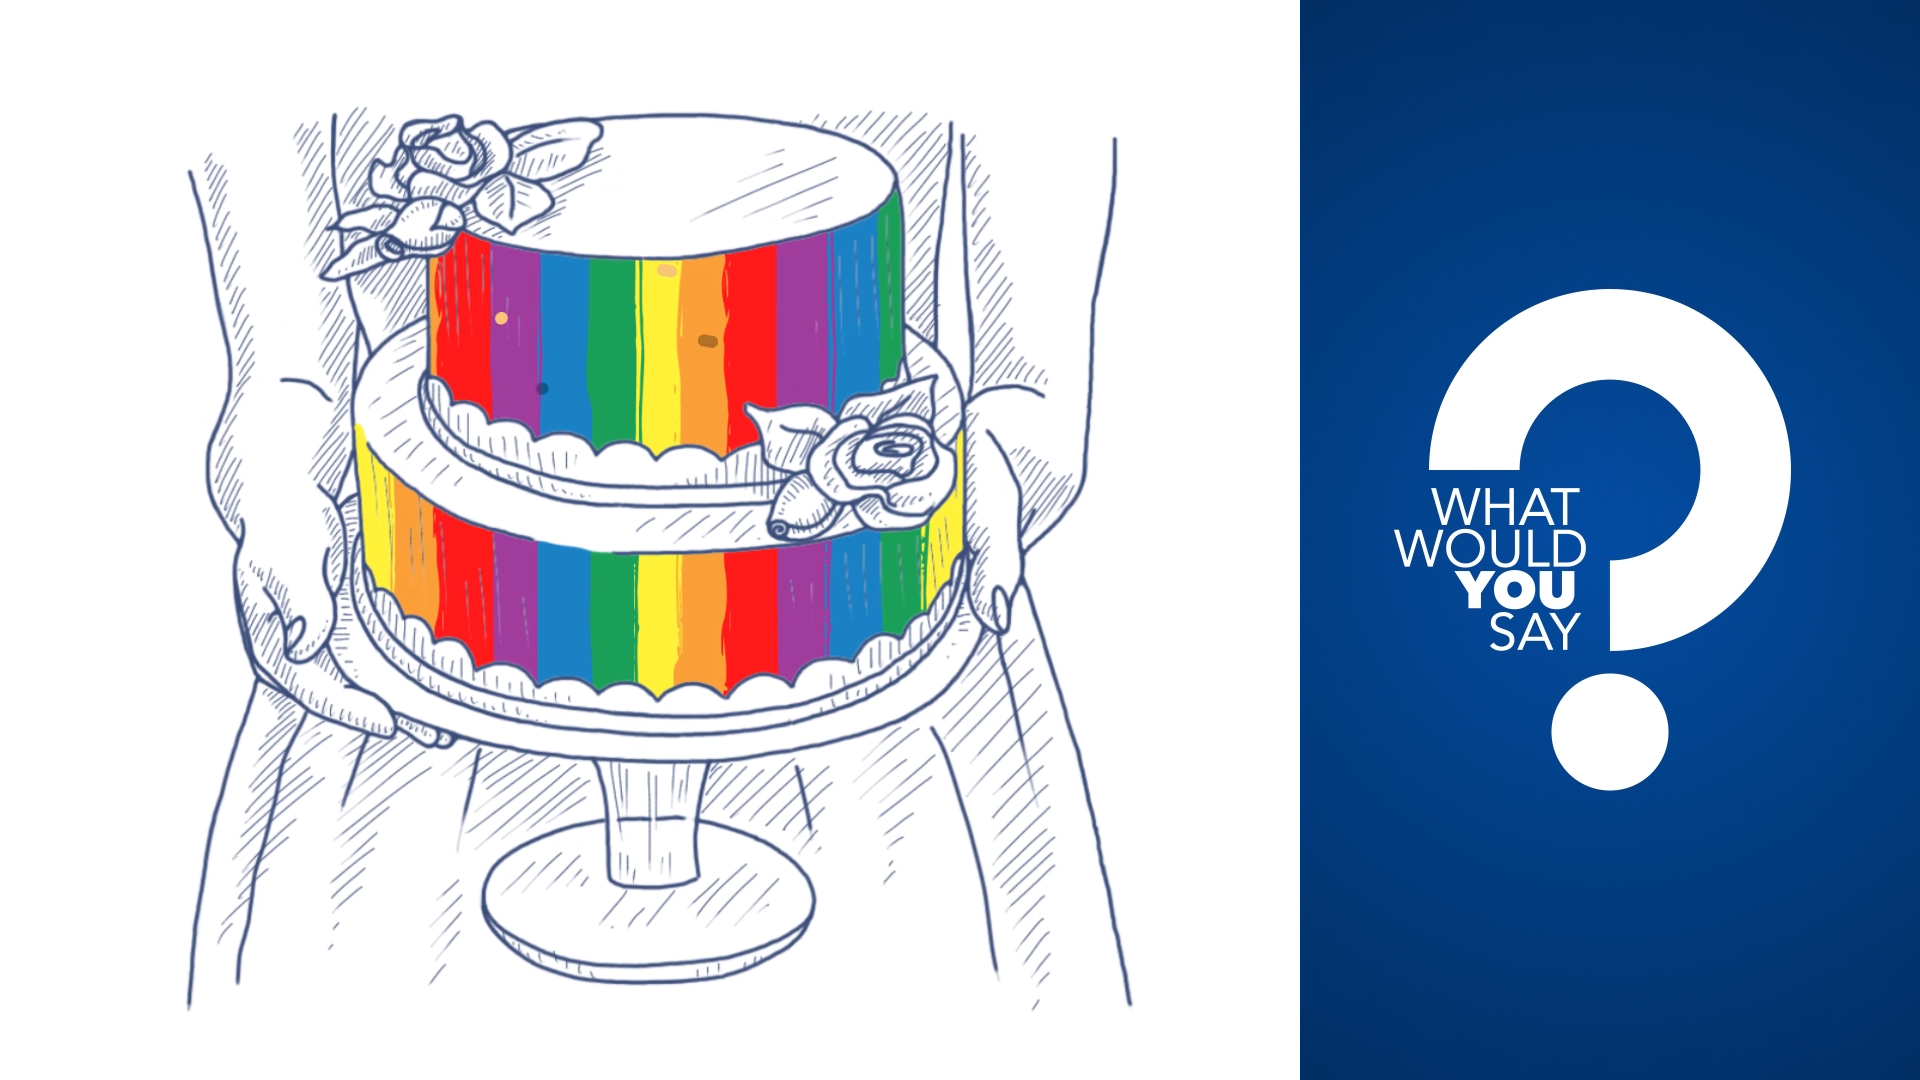 Are Christians Legally Required to Bake Gay Wedding Cakes?